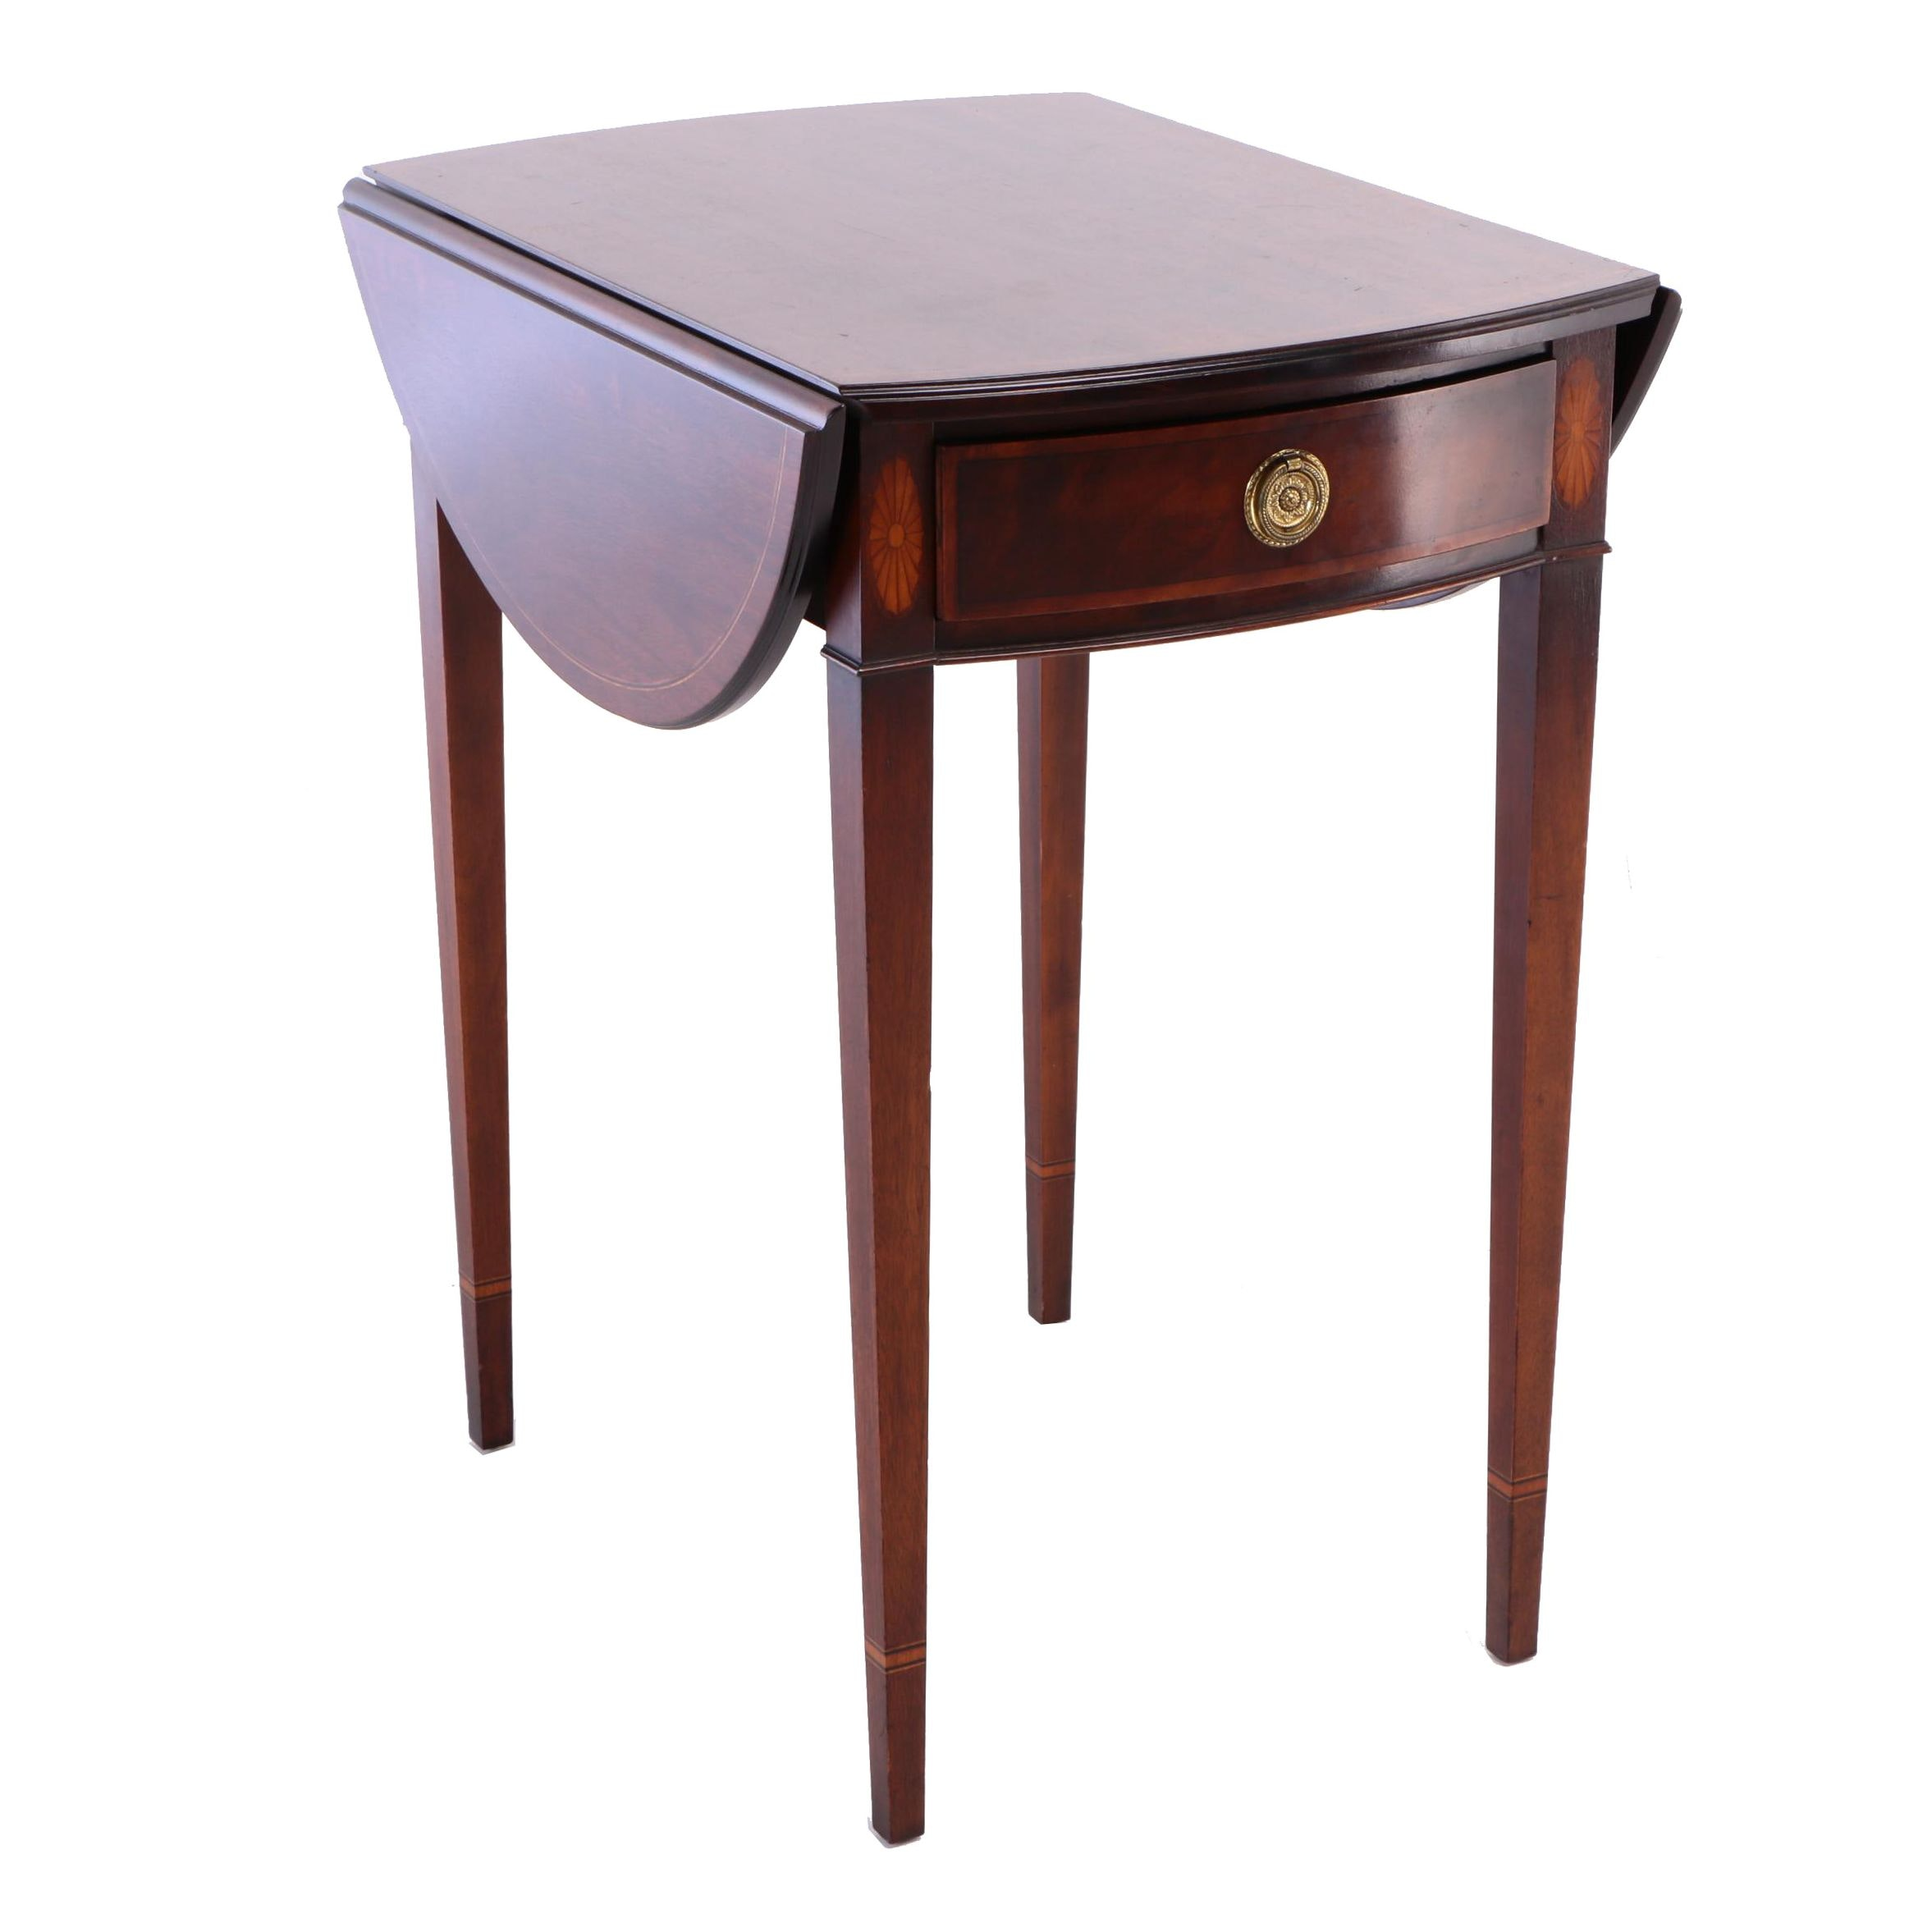 George III Style Mahogany and Marquetry Pembroke Table, 20th Century